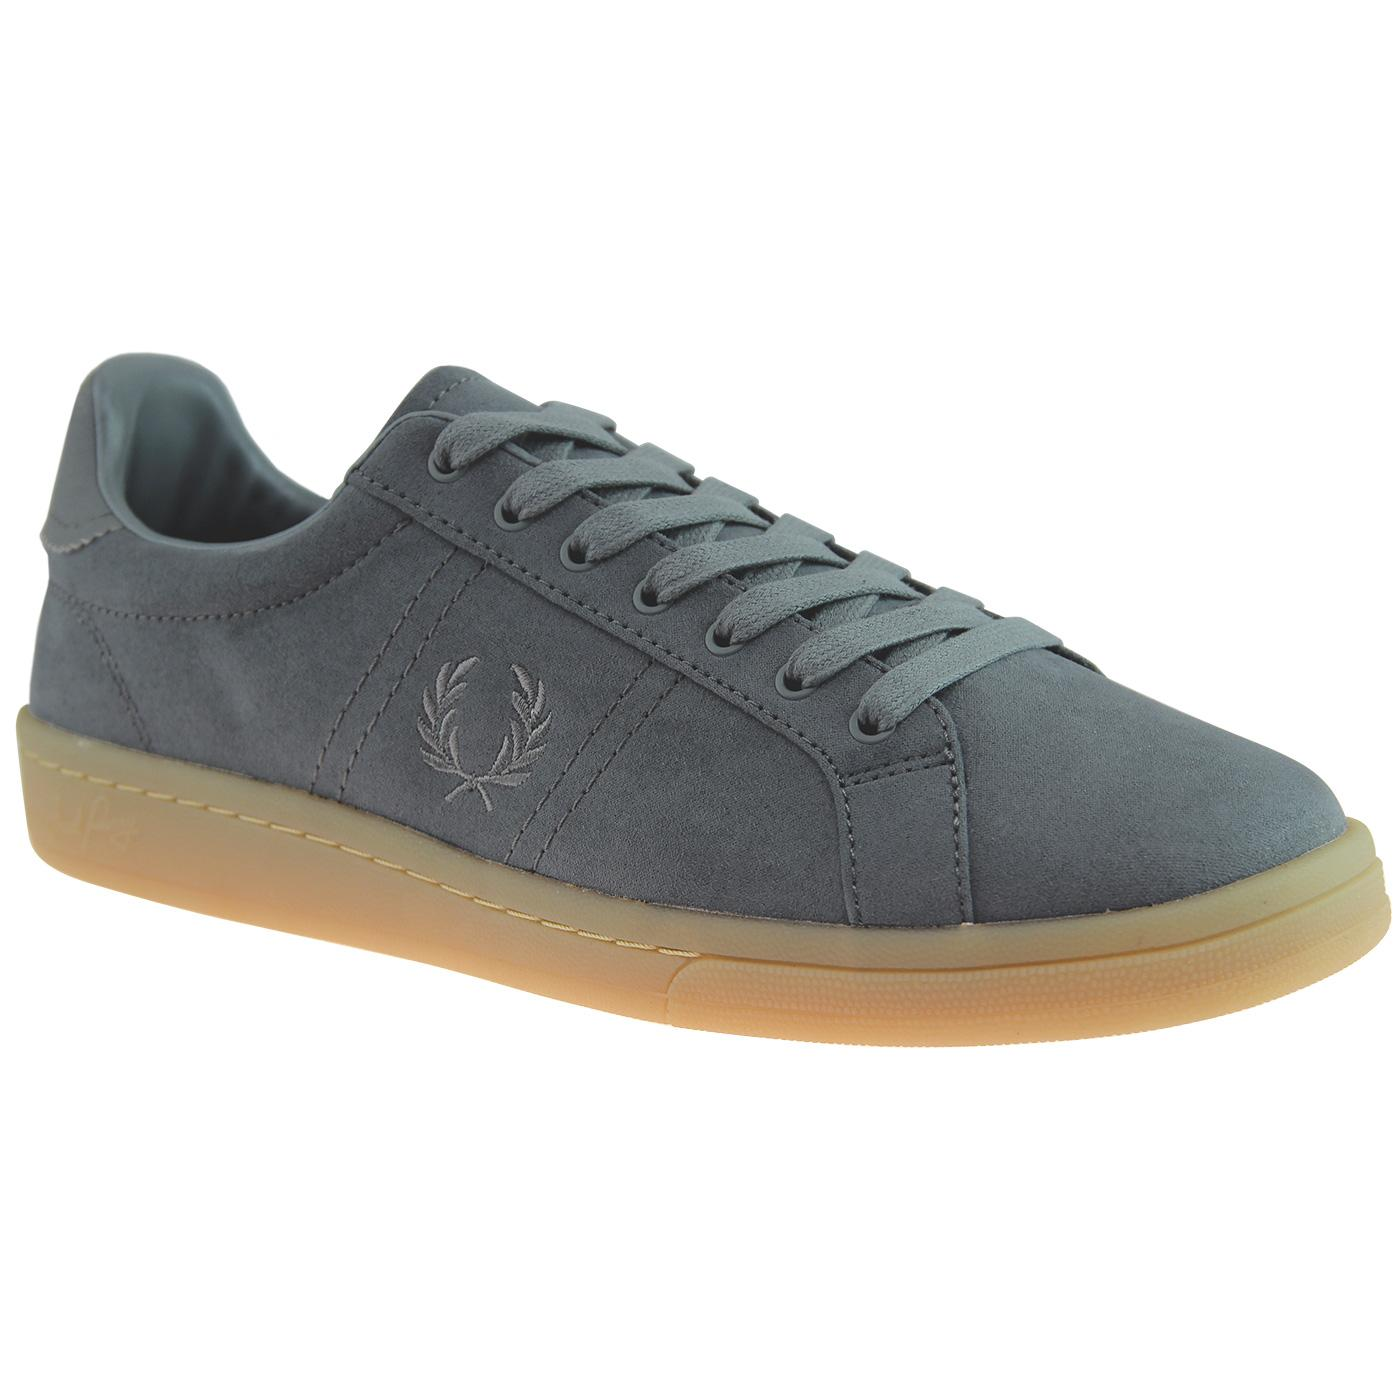 FRED PERRY B721 Retro Microfibre Tennis Trainers A